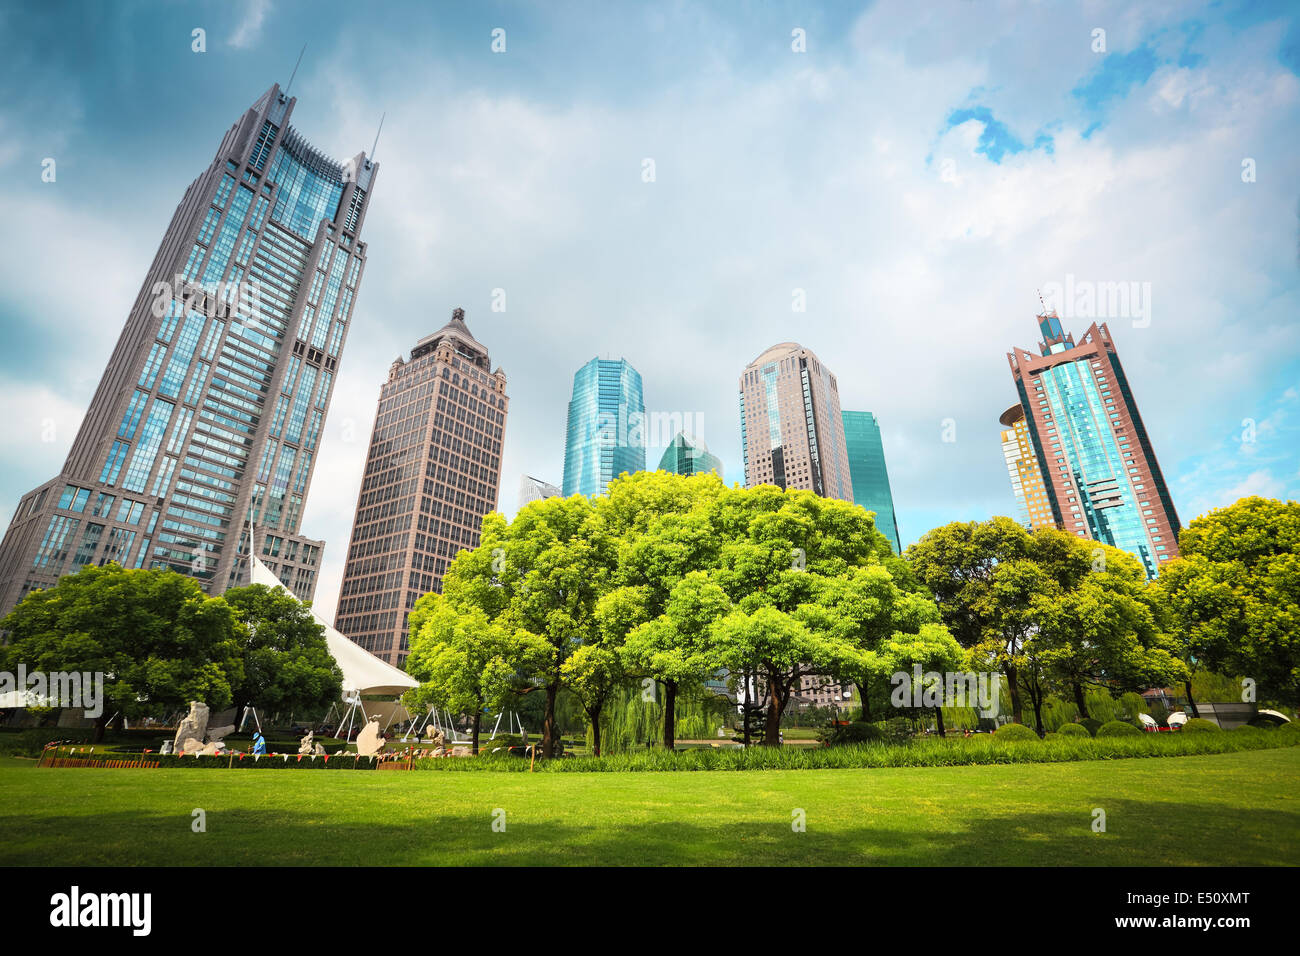 city greenbelt with modern buildings - Stock Image